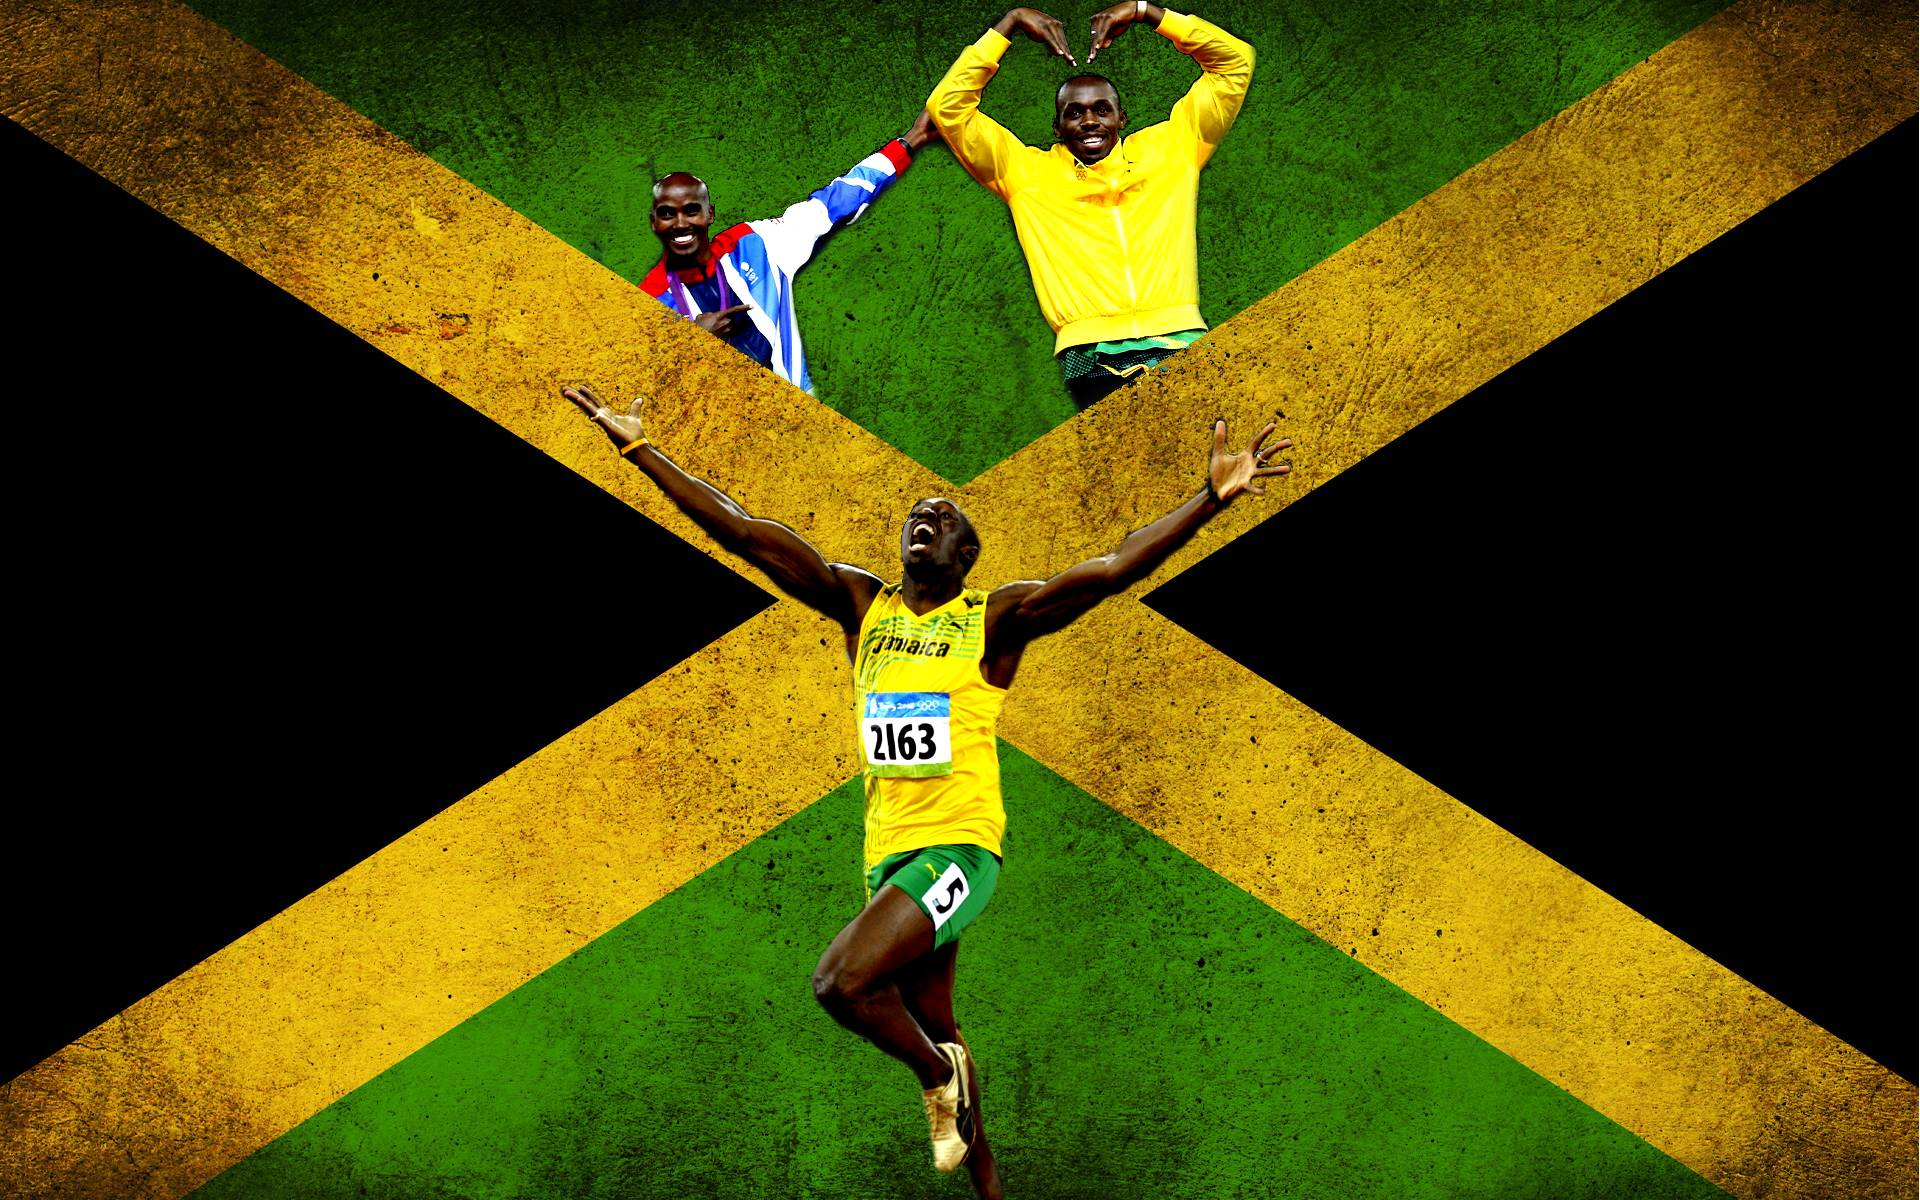 Wallpaper Mobil Sport Hd Usain Bolt Pictures Hd Wallpapers All Hd Wallpapers